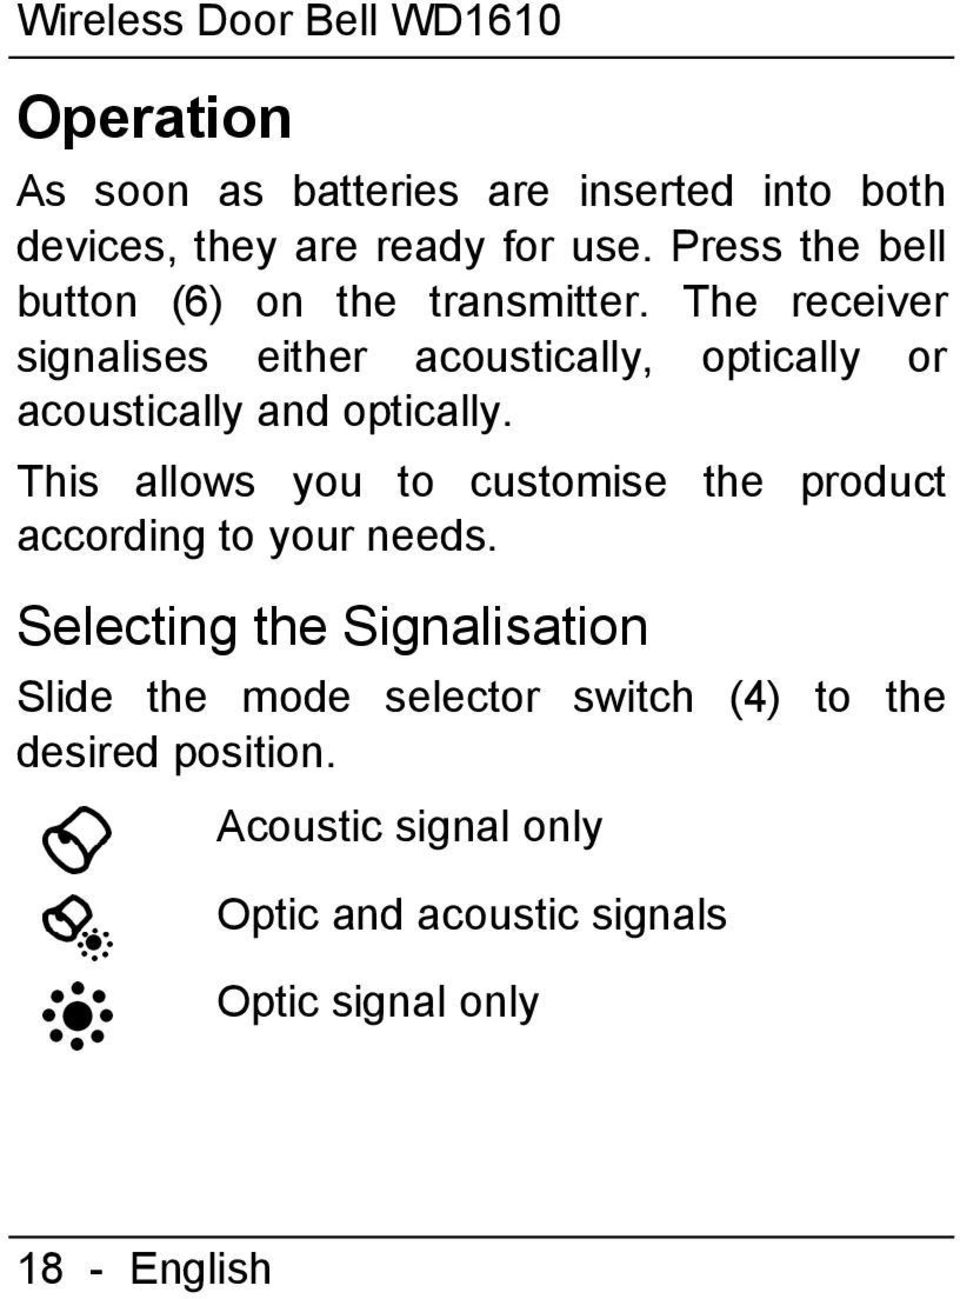 The receiver signalises either acoustically, optically or acoustically and optically.